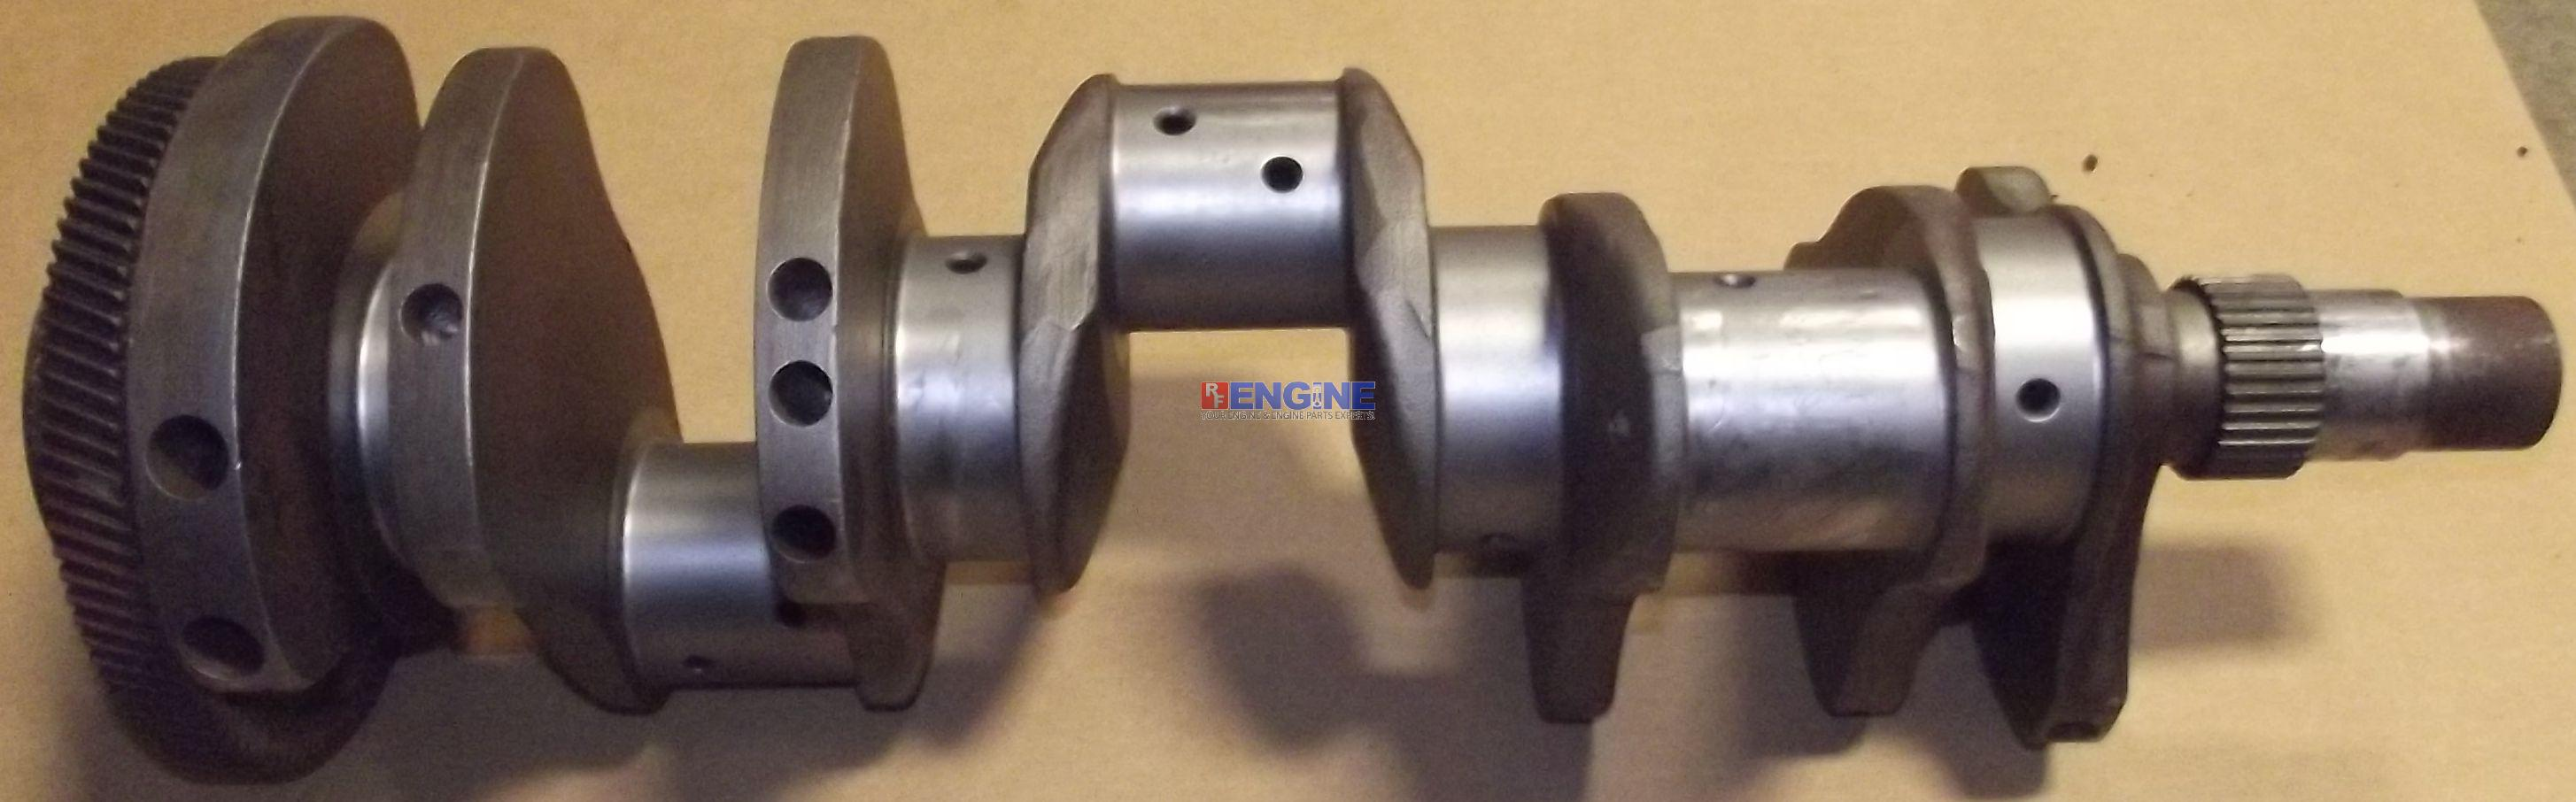 Details about Crankshaft Remachined Detroit Diesel 318 5116030 Stroke:  4 50